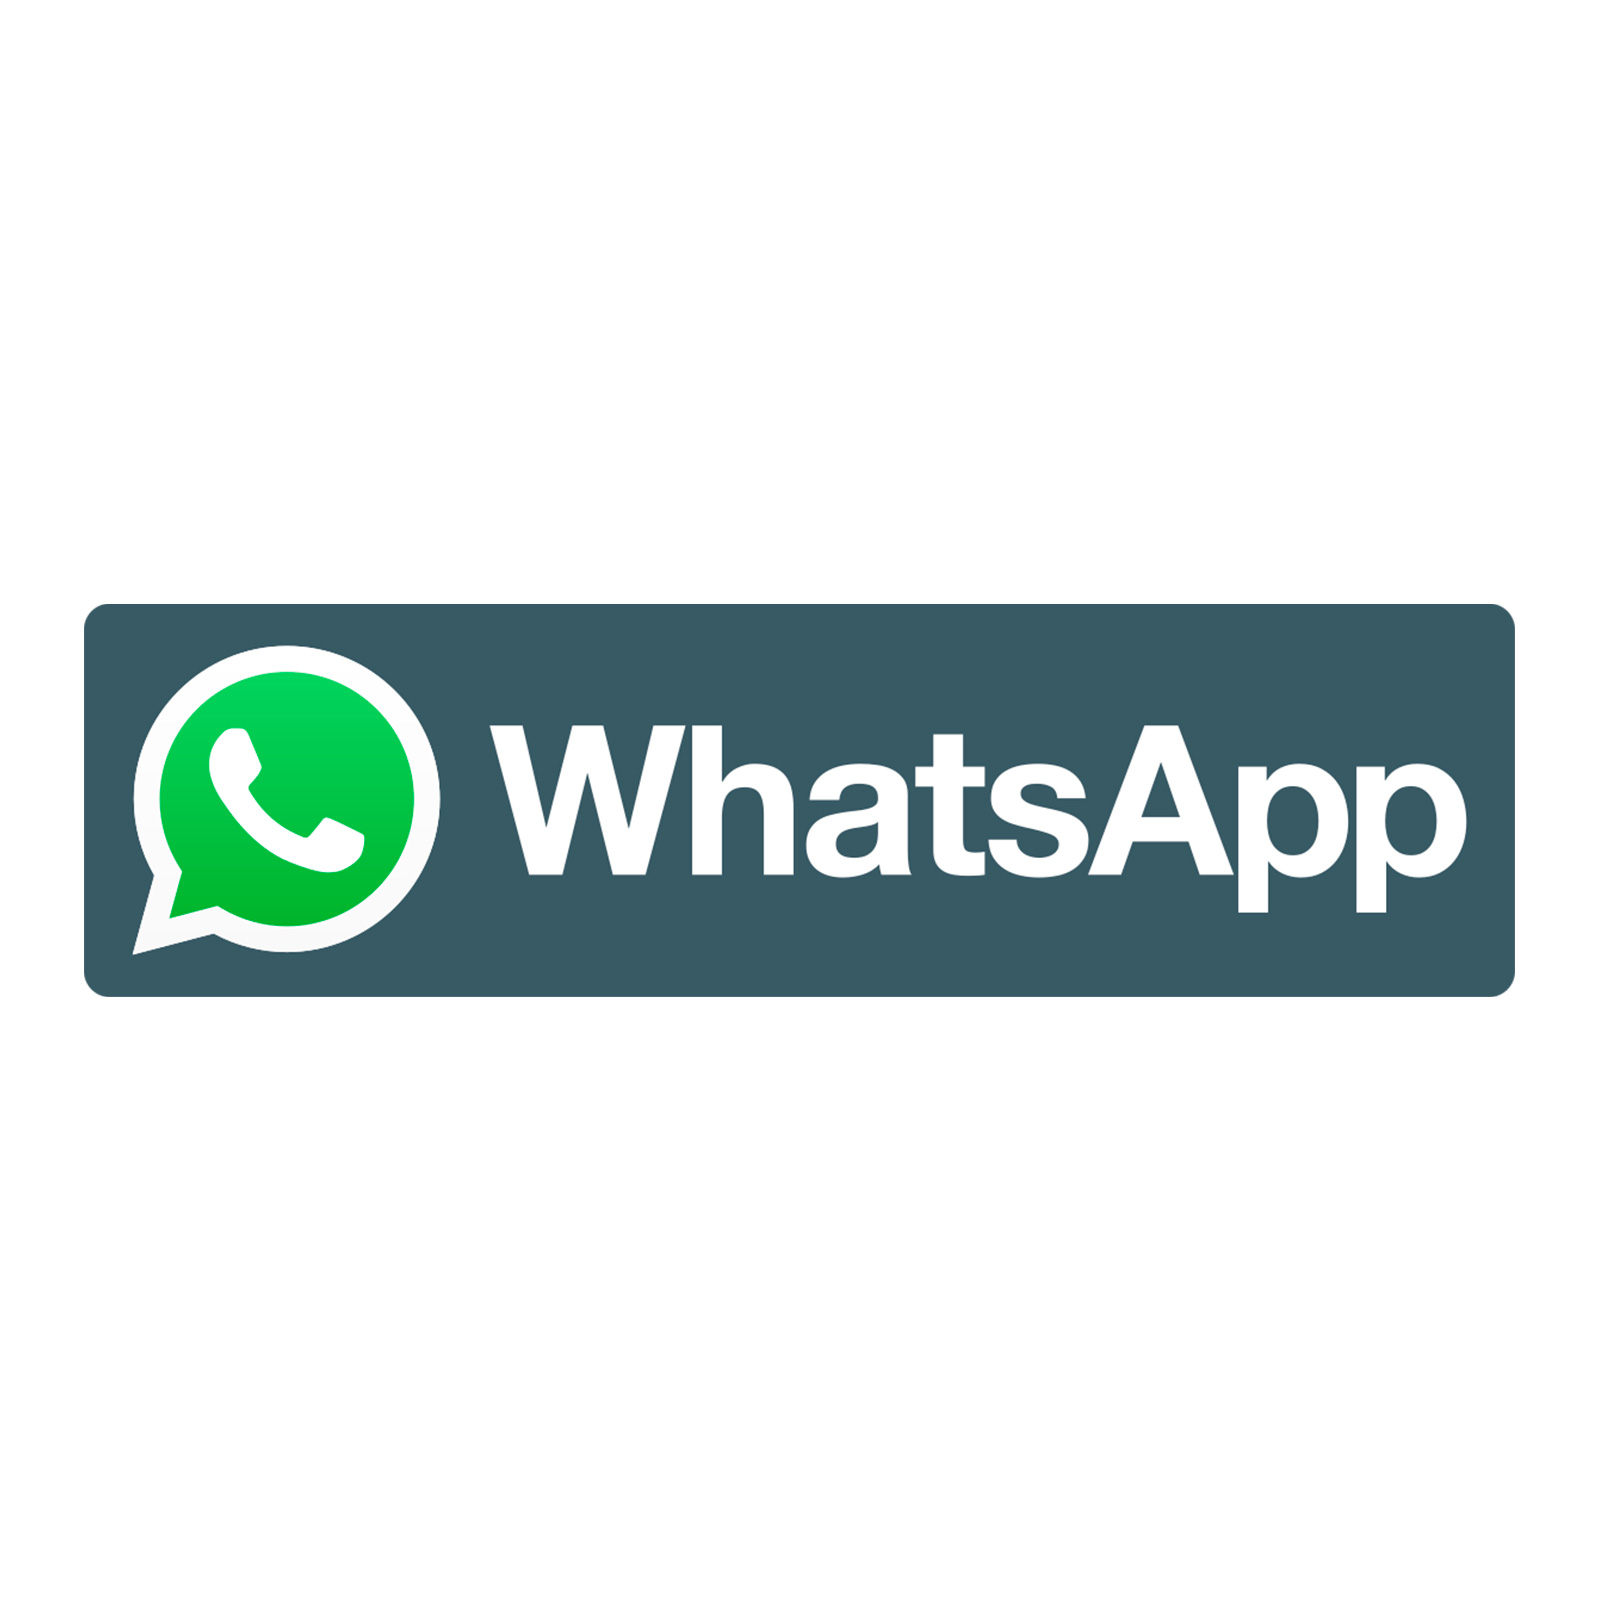 WhatsApp Messenger is a freeware and cross-platform messaging and Voice over IP service owned by Facebook